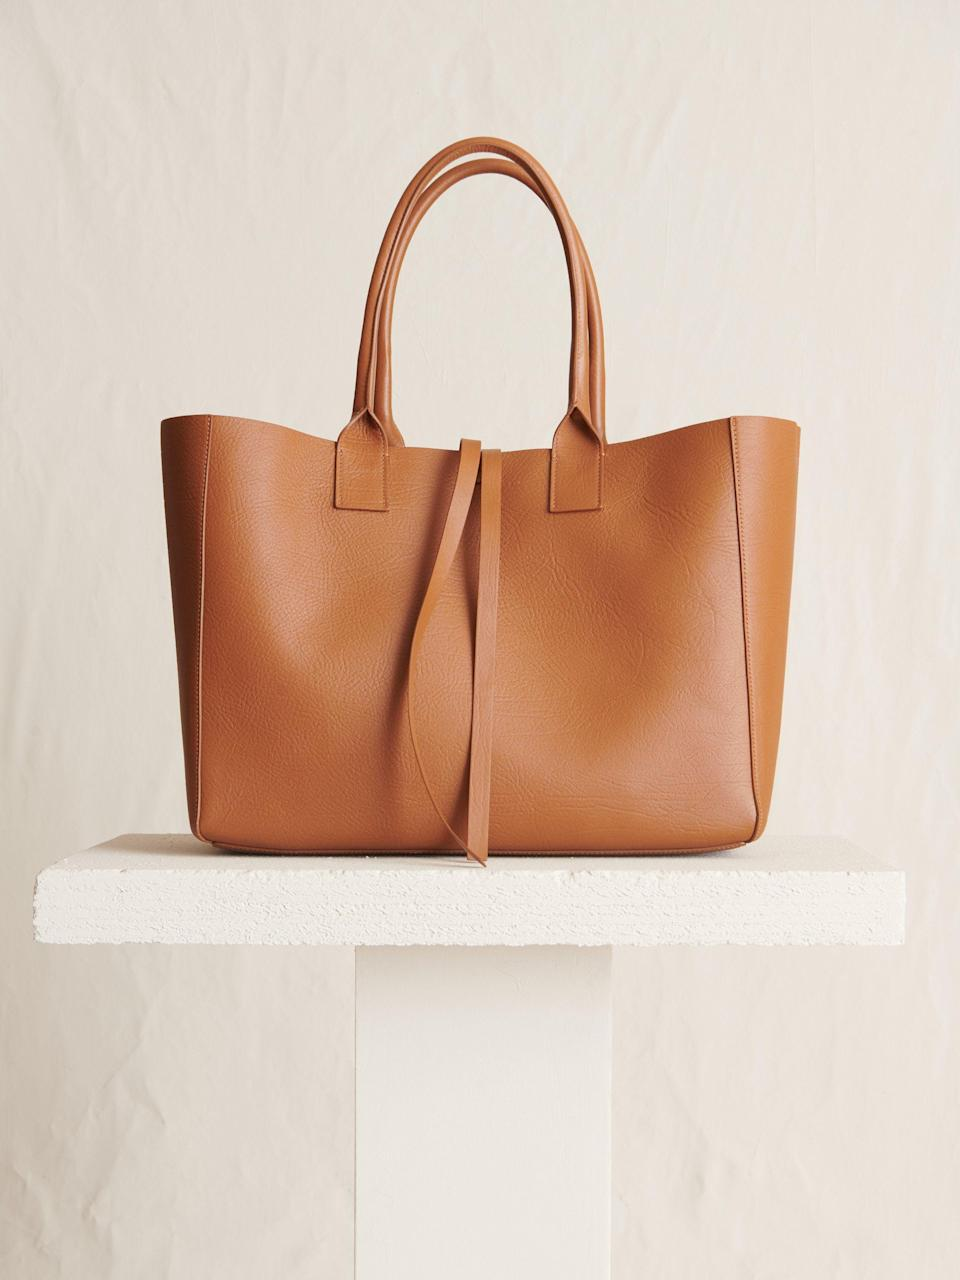 """<p><strong>Yvonne Koné</strong></p><p>yvonnekone.com</p><p><strong>$5600.00</strong></p><p><a href=""""https://www.yvonnekone.com/collections/totes/products/large-filippo-bag-ambra"""" rel=""""nofollow noopener"""" target=""""_blank"""" data-ylk=""""slk:Shop Now"""" class=""""link rapid-noclick-resp"""">Shop Now</a></p><p>The Danish label fuses sleek design with influence teased from the Ivory Coast. Fashioned from Italian leather, this minimalist shape stands as a versatile, failsafe option for toting necessities and more. </p>"""